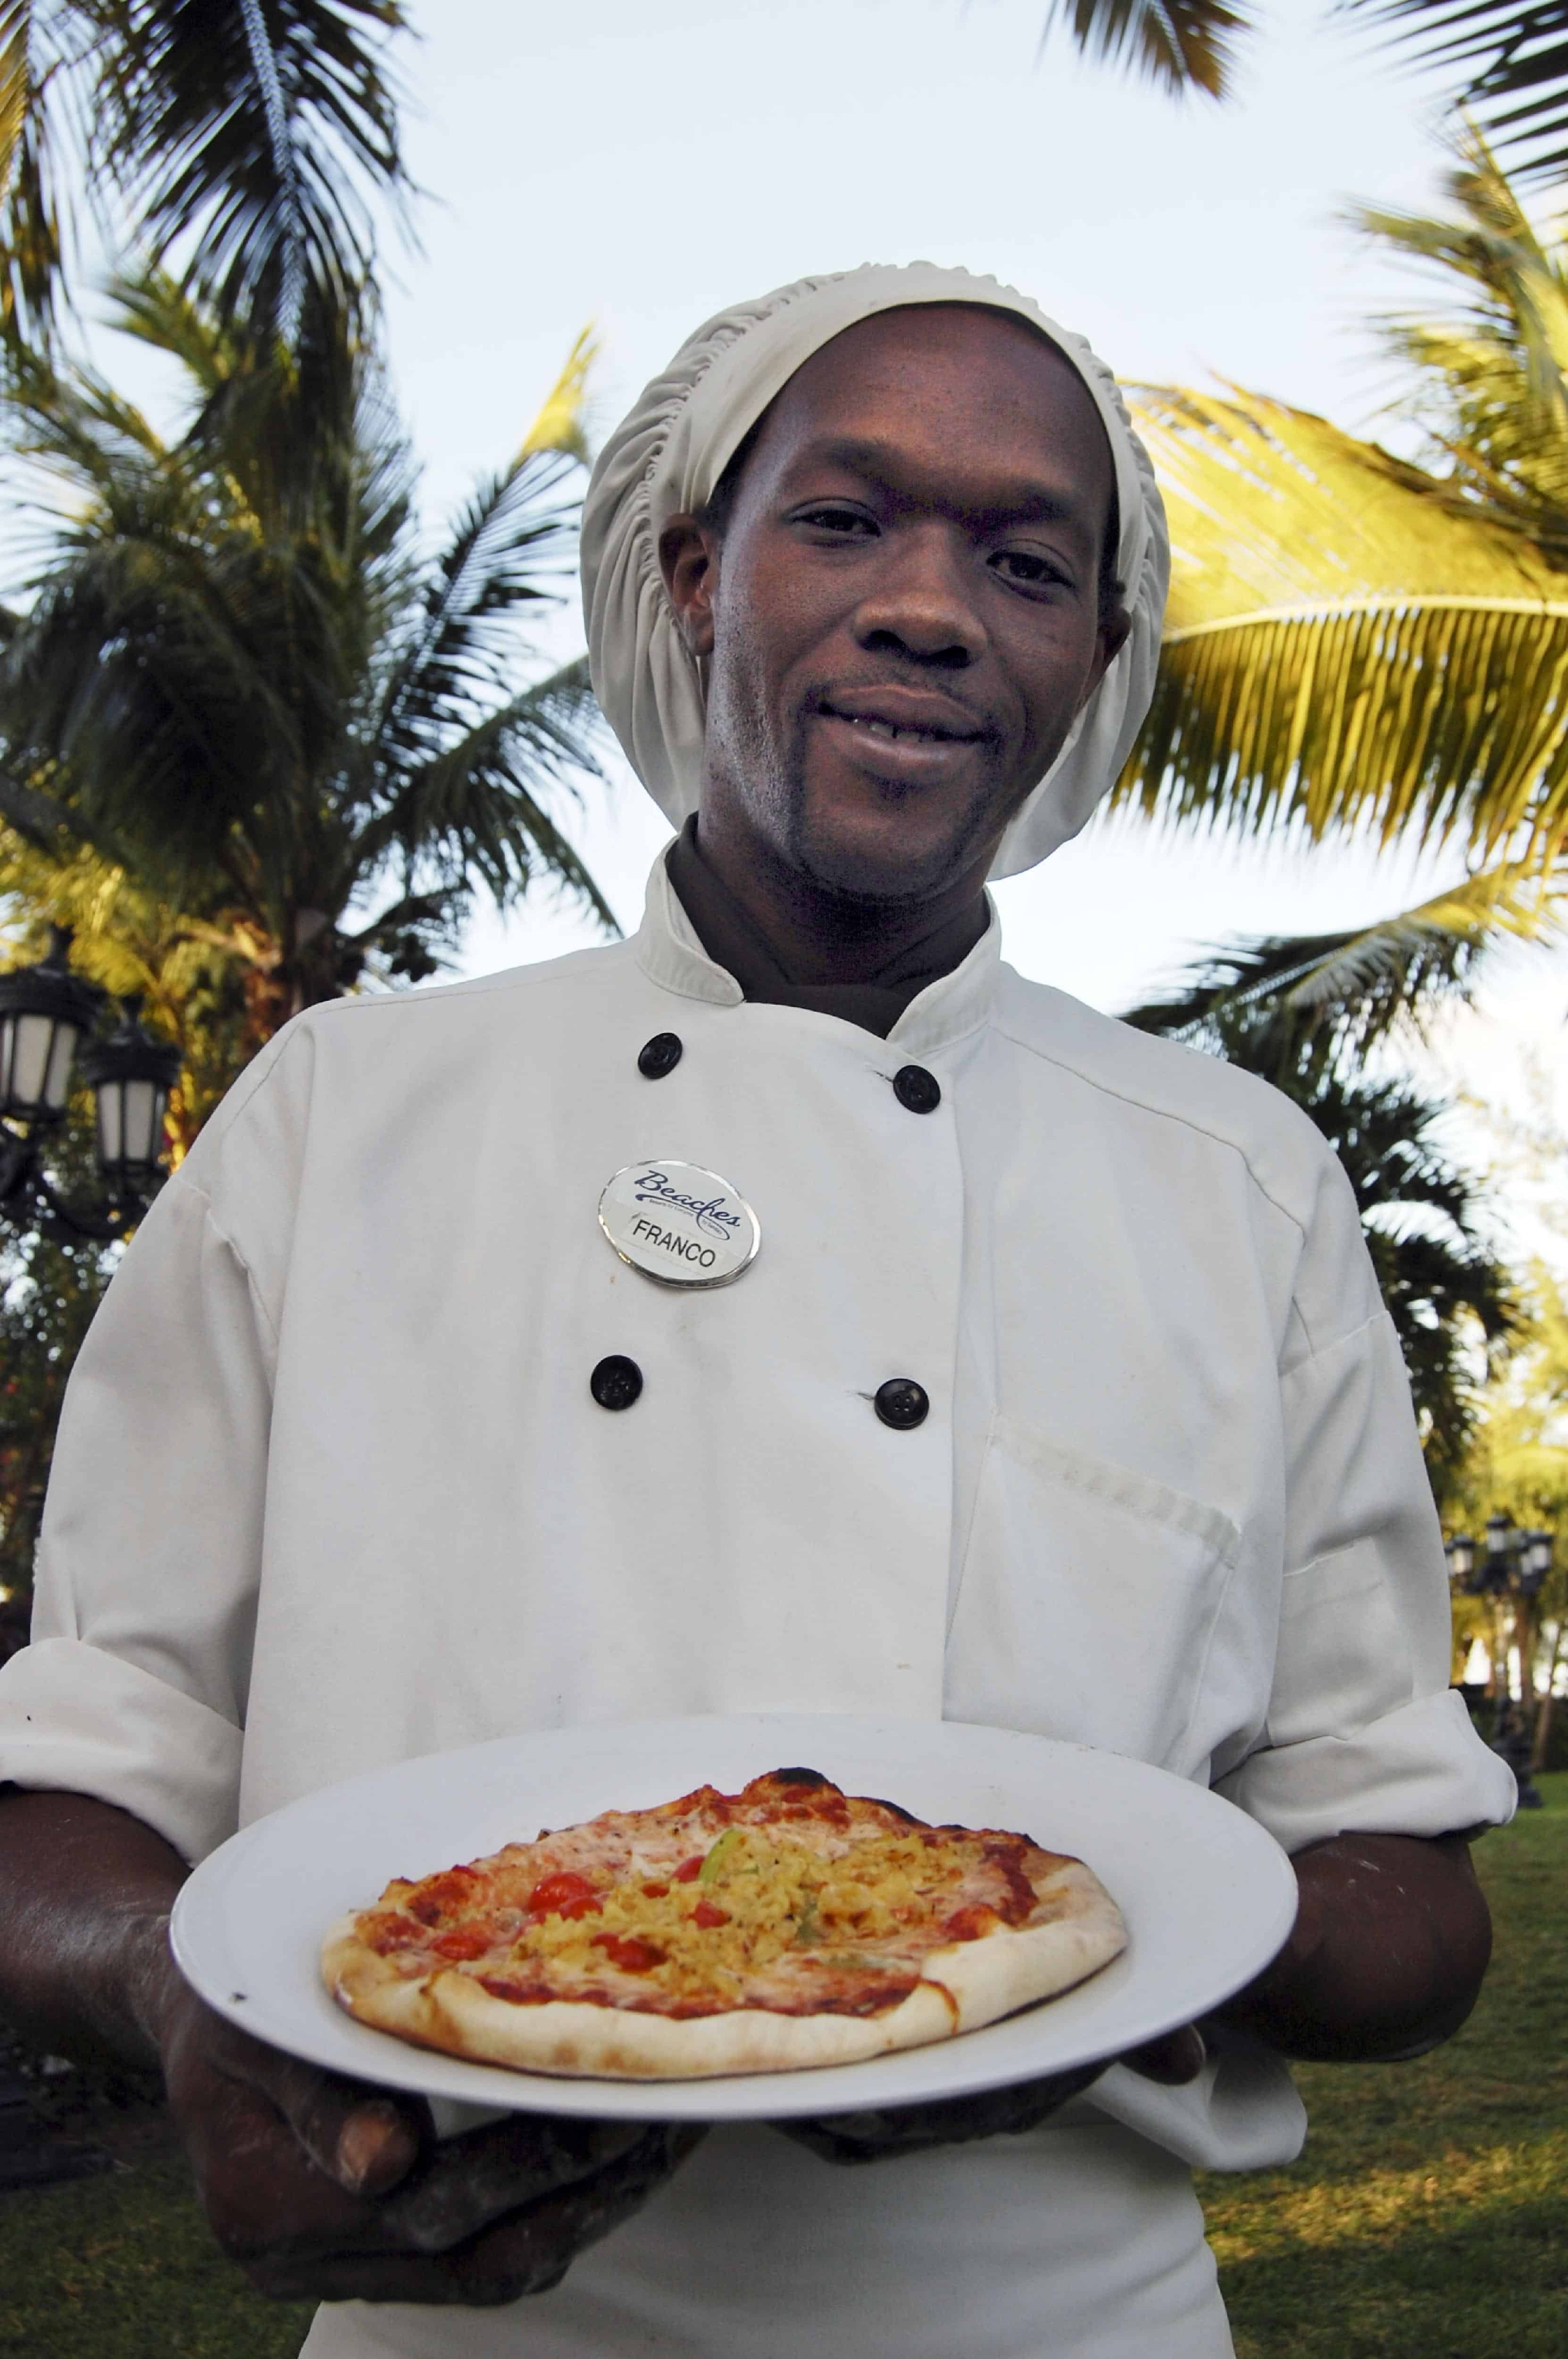 franco with conch pizza